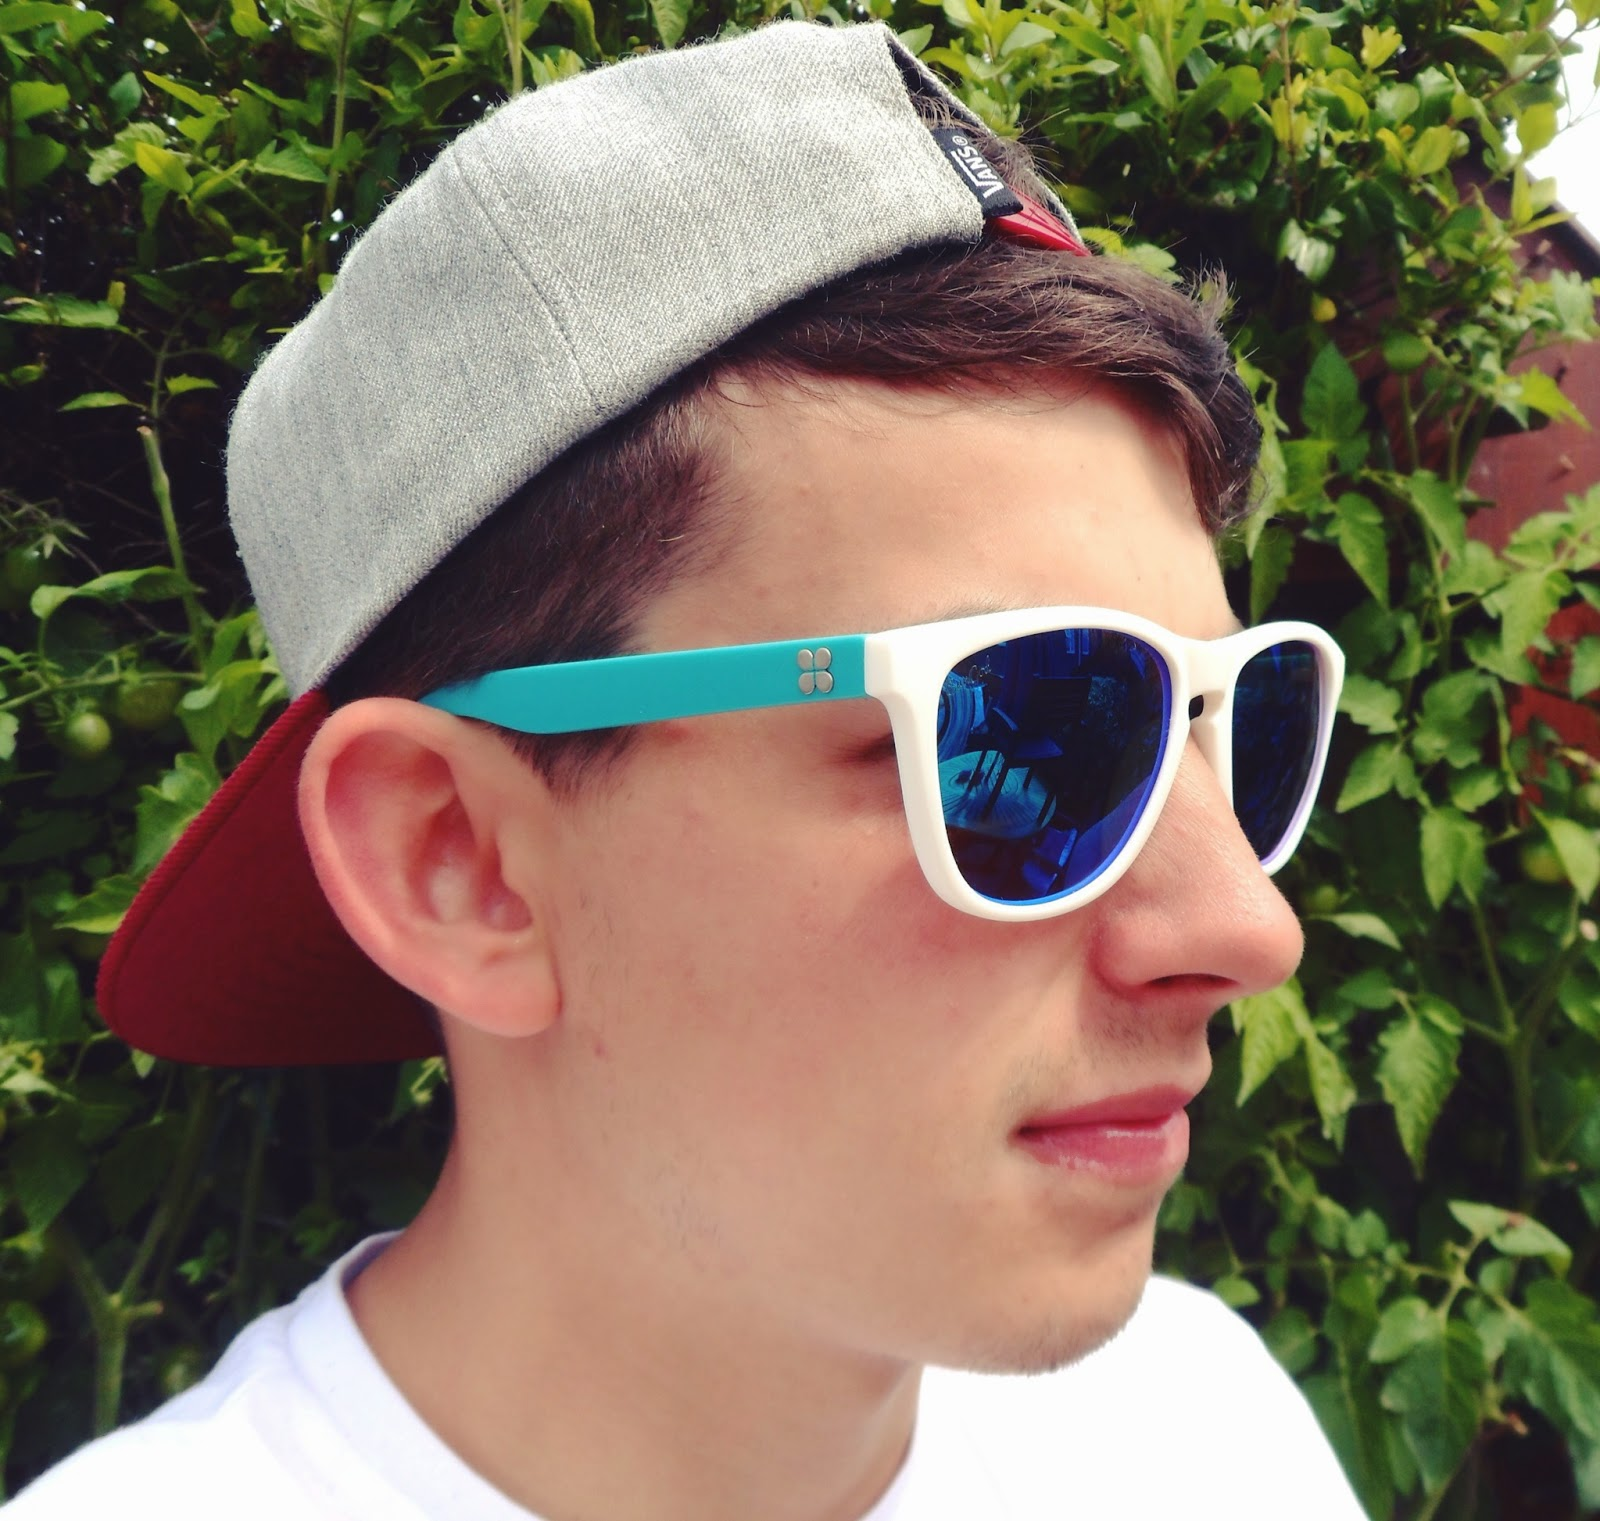 fashion bloggers, fbloggers, wiw, whatimwearing, ootd, outfitoftheday, sunglasses, sun god, snapback, male bloggers, summer, boardmasters festival, boardmasters, festival, polarised sunglasses, topman, ASOS, Vans